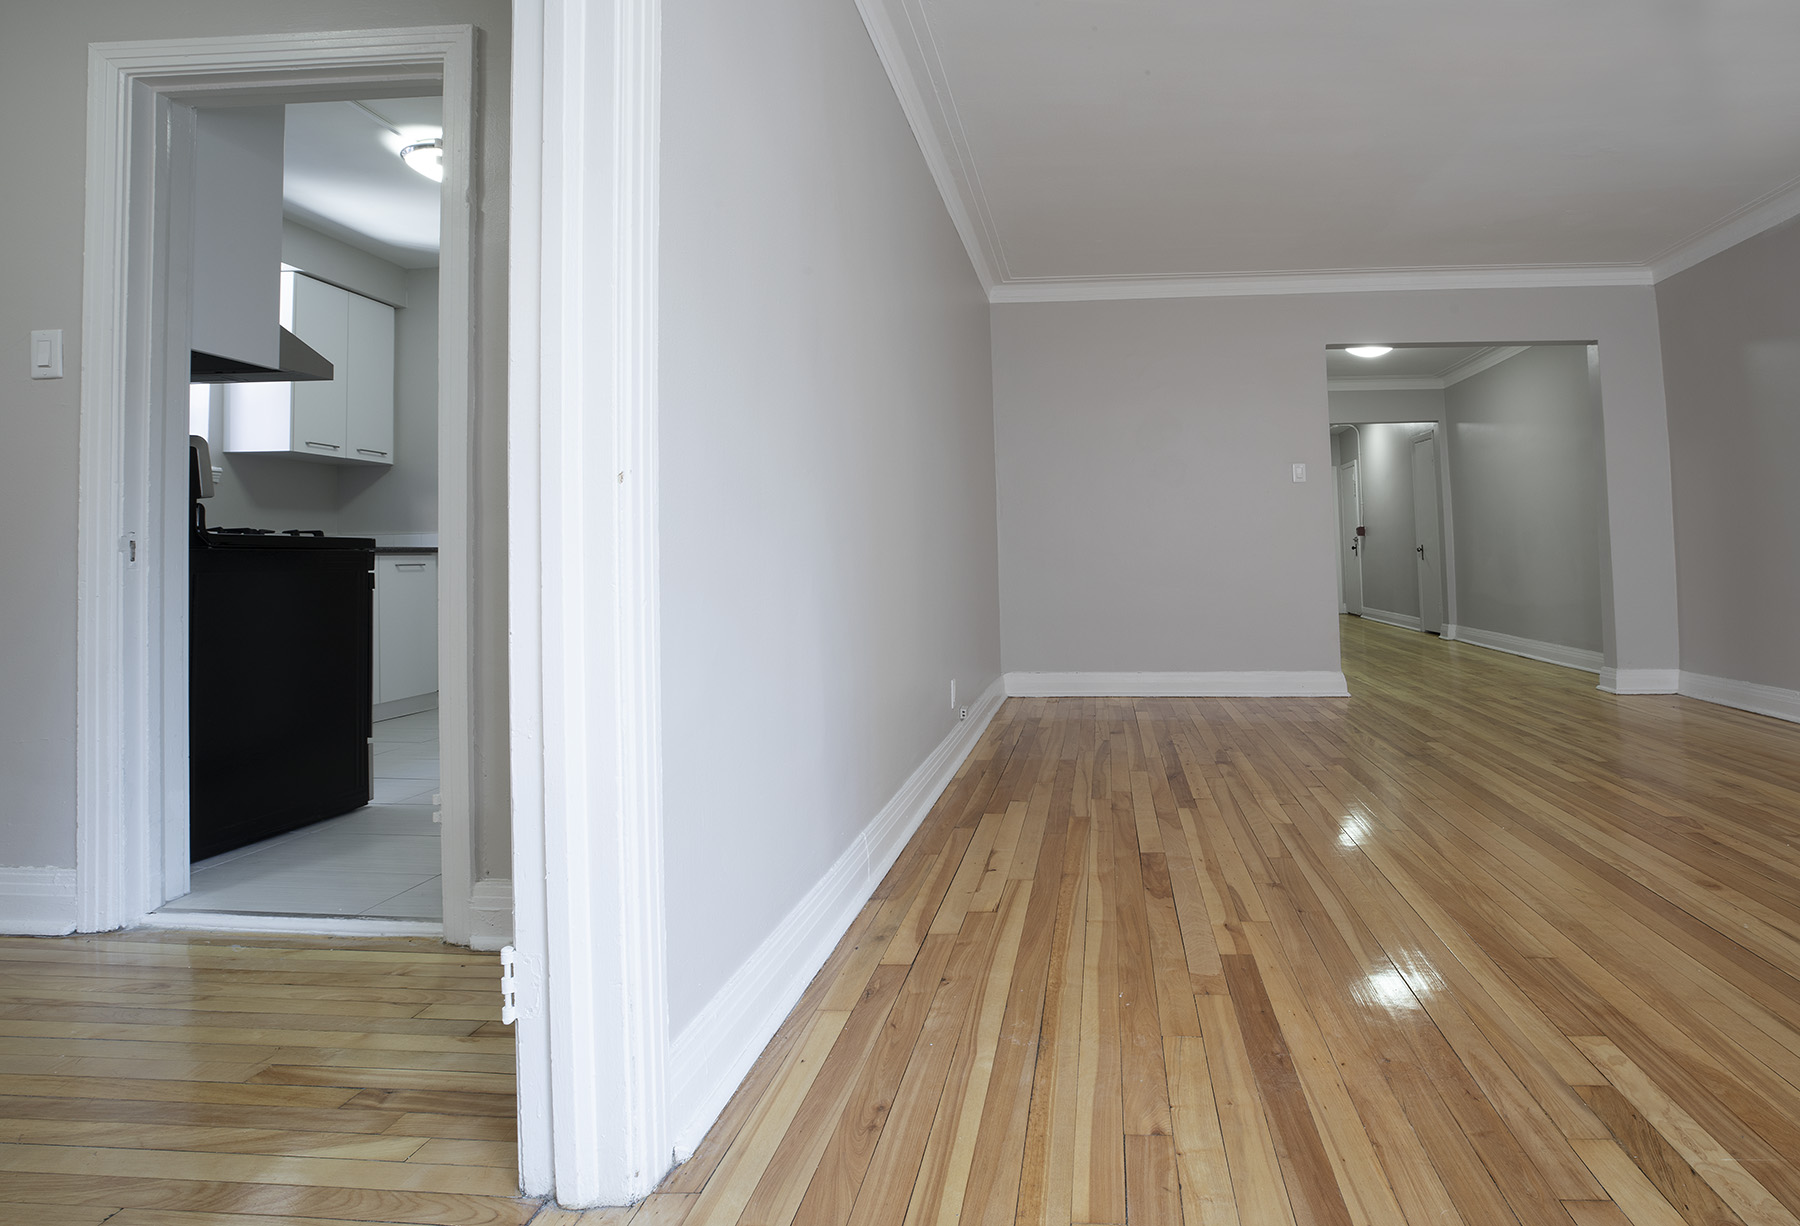 2 bedroom Apartments for rent in Cote-des-Neiges at 5000 Clanranald - Photo 12 - RentQuebecApartments – L401548